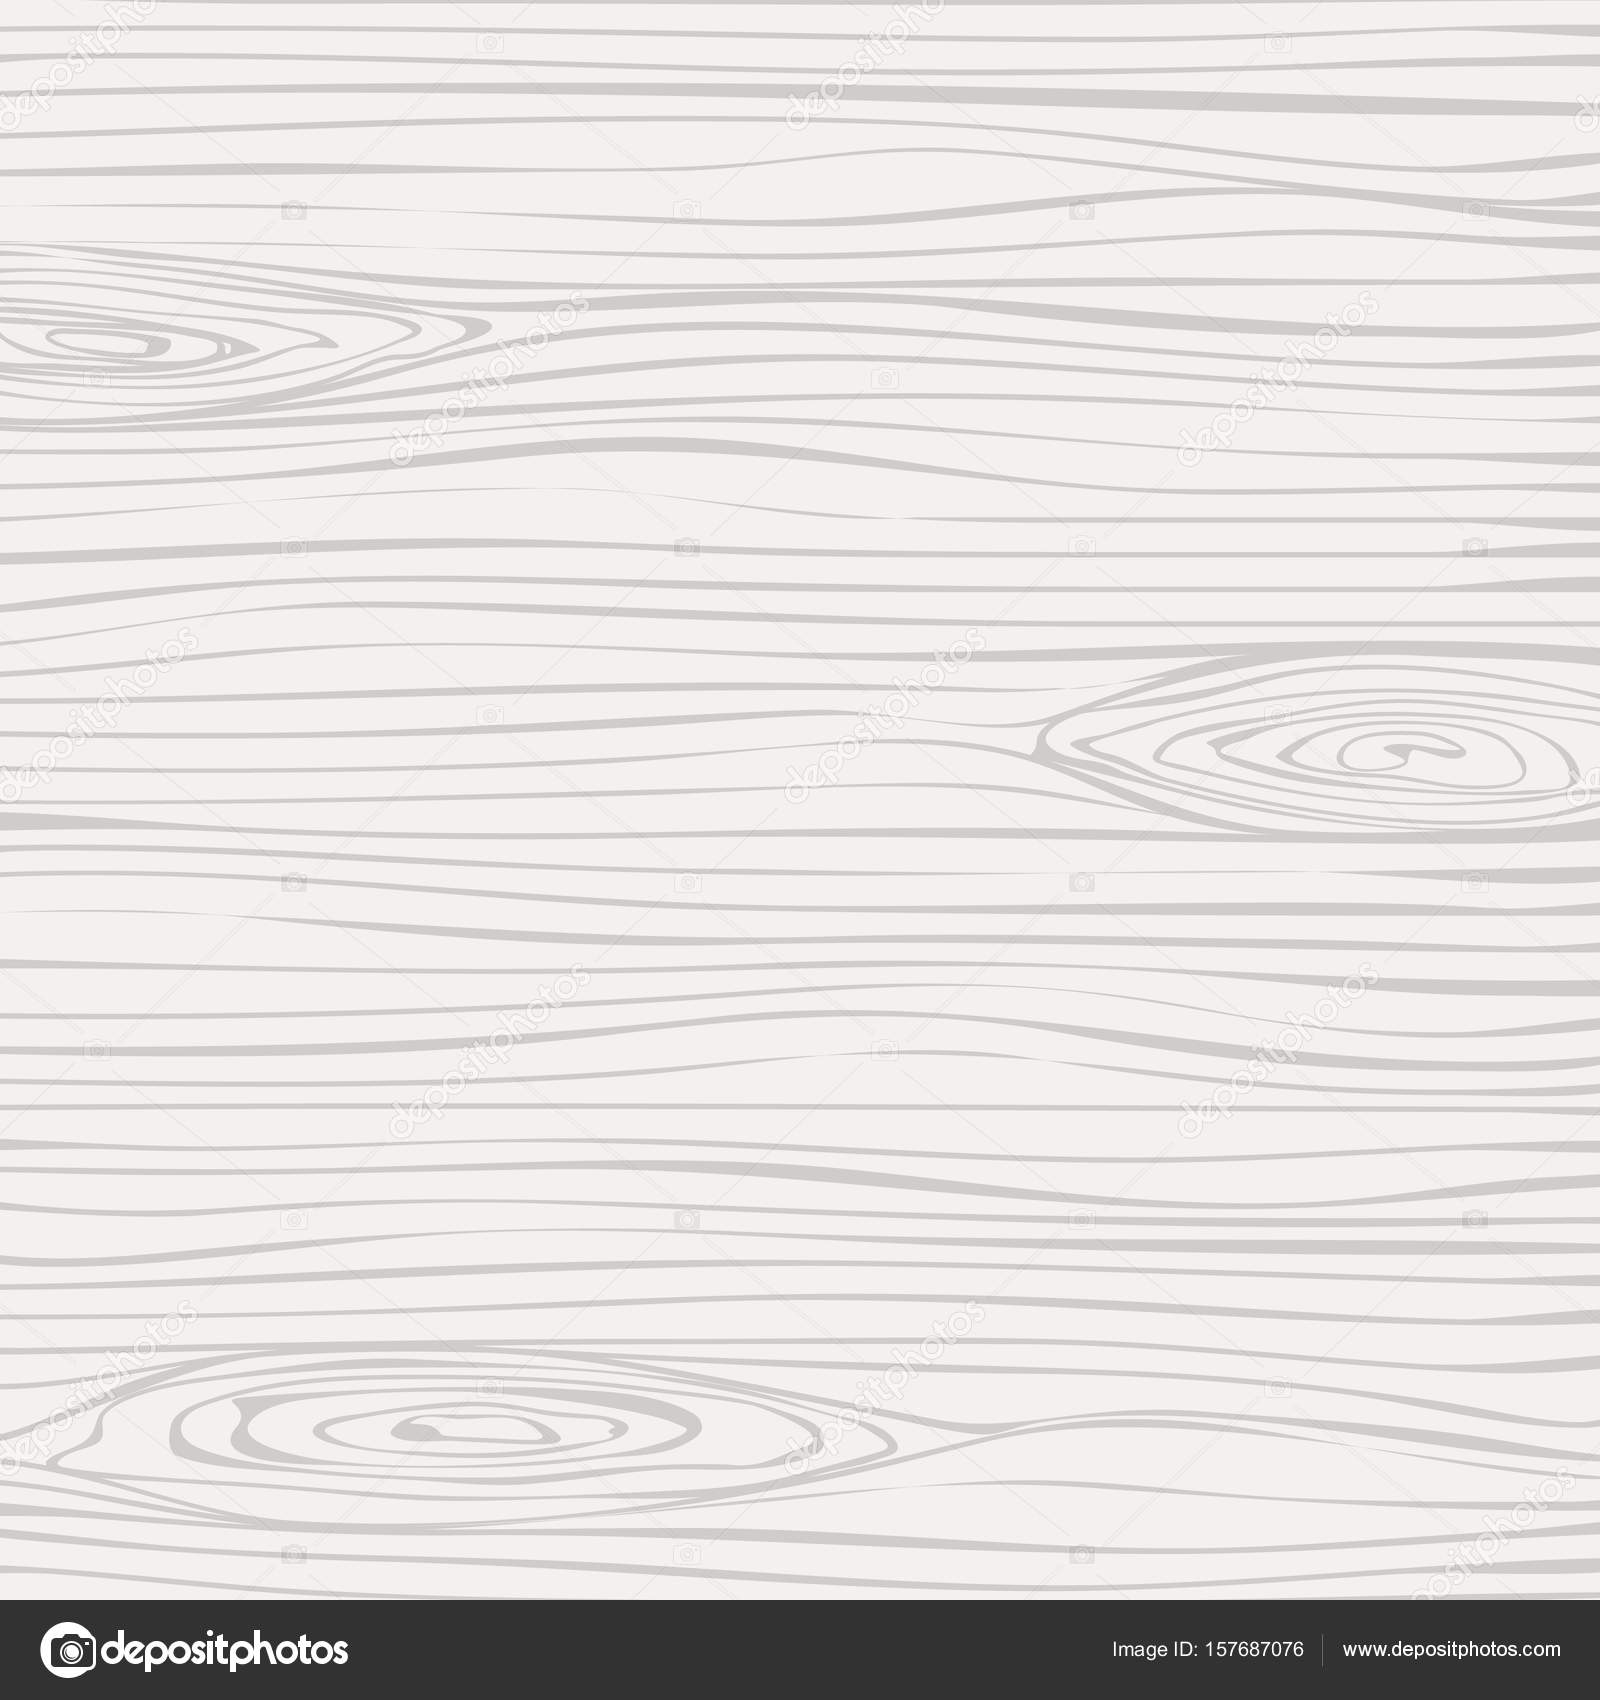 White wood table texture - White Wooden Wall Plank Table Or Floor Surface Cutting Chopping Board Wood Texture Vector By Flas100